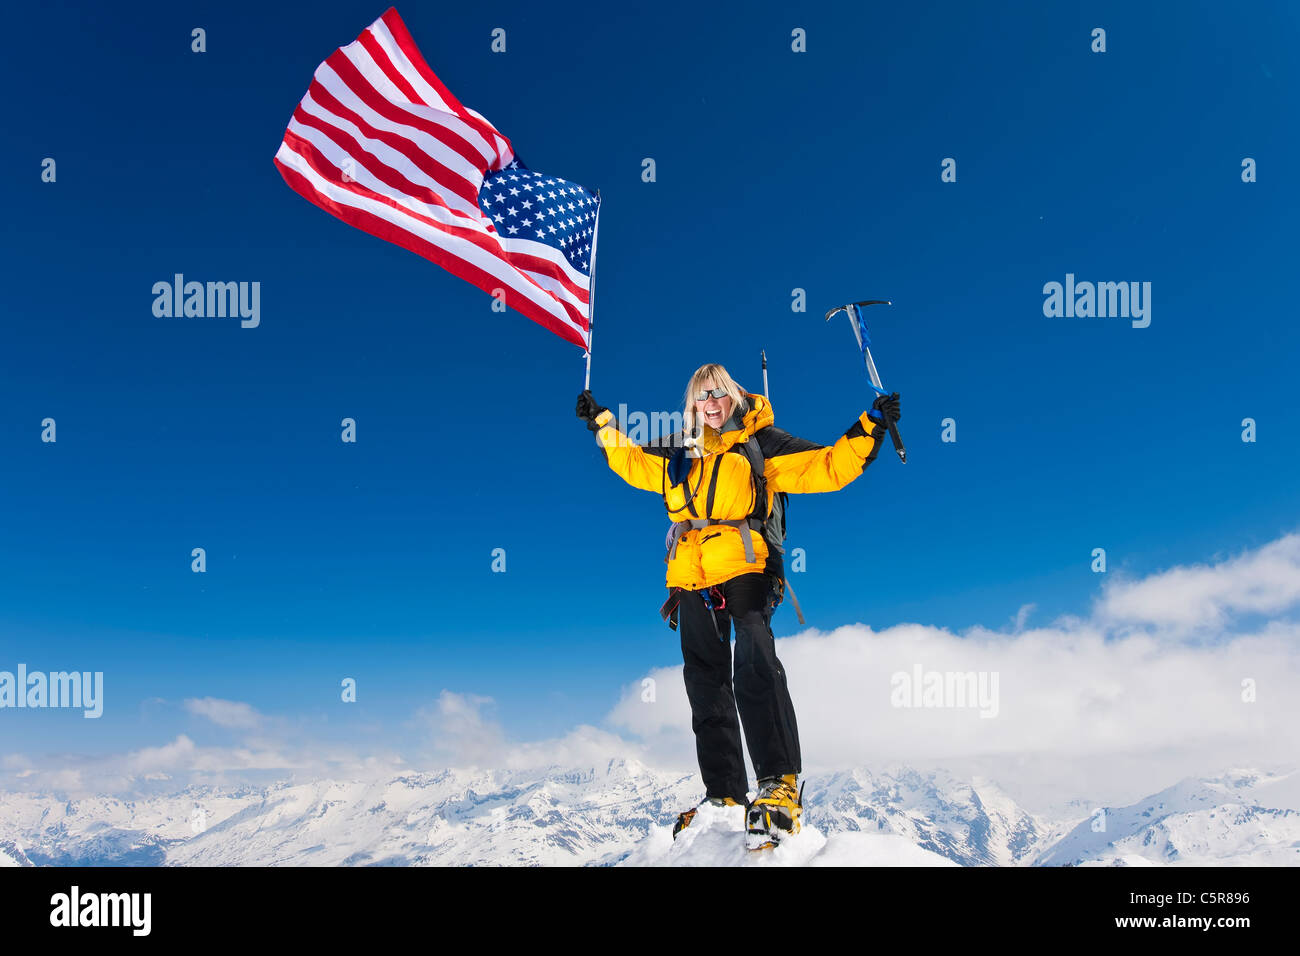 Mountaineer celebrates on summit flying the stars and stripes. - Stock Image